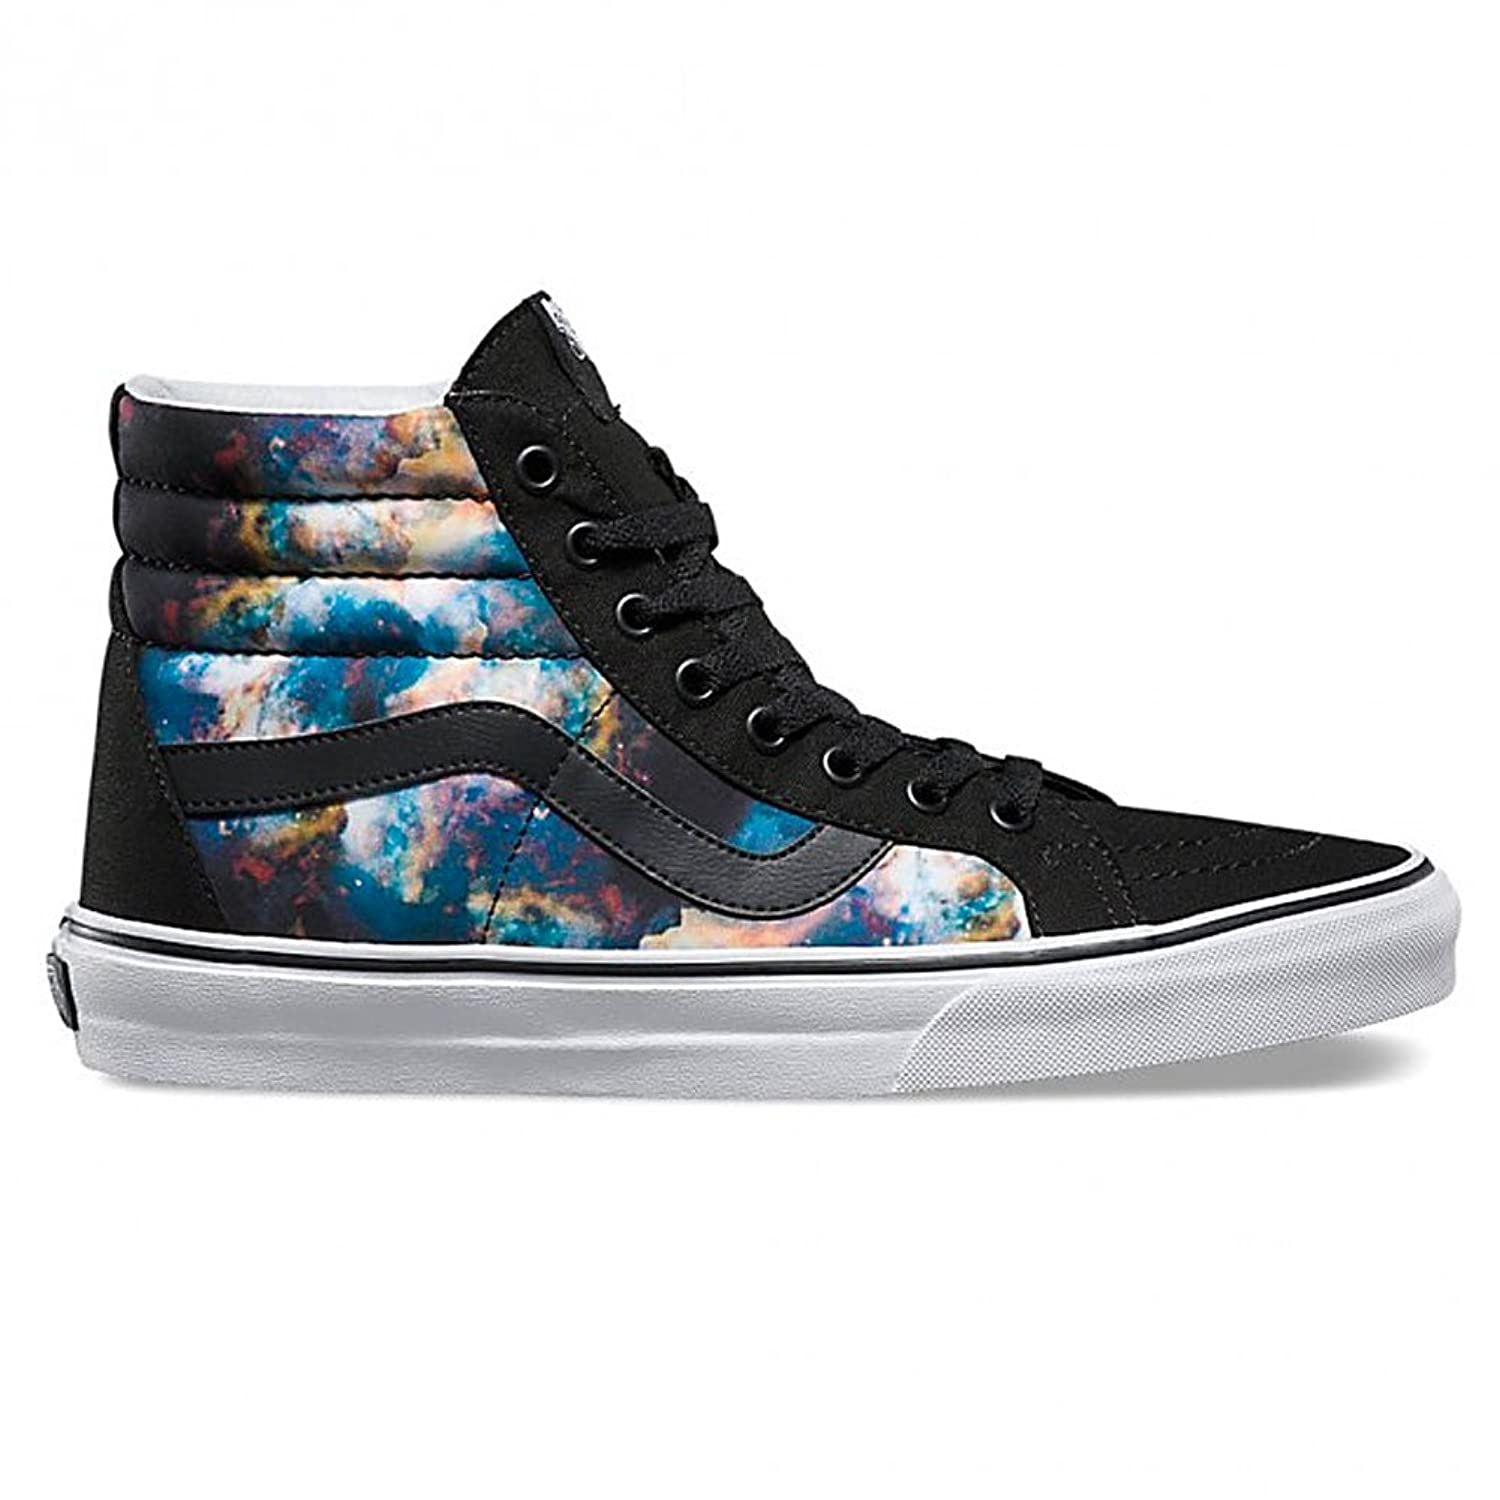 cheap Vans SK8 HI Nebula Reissue Black True White Skateboard